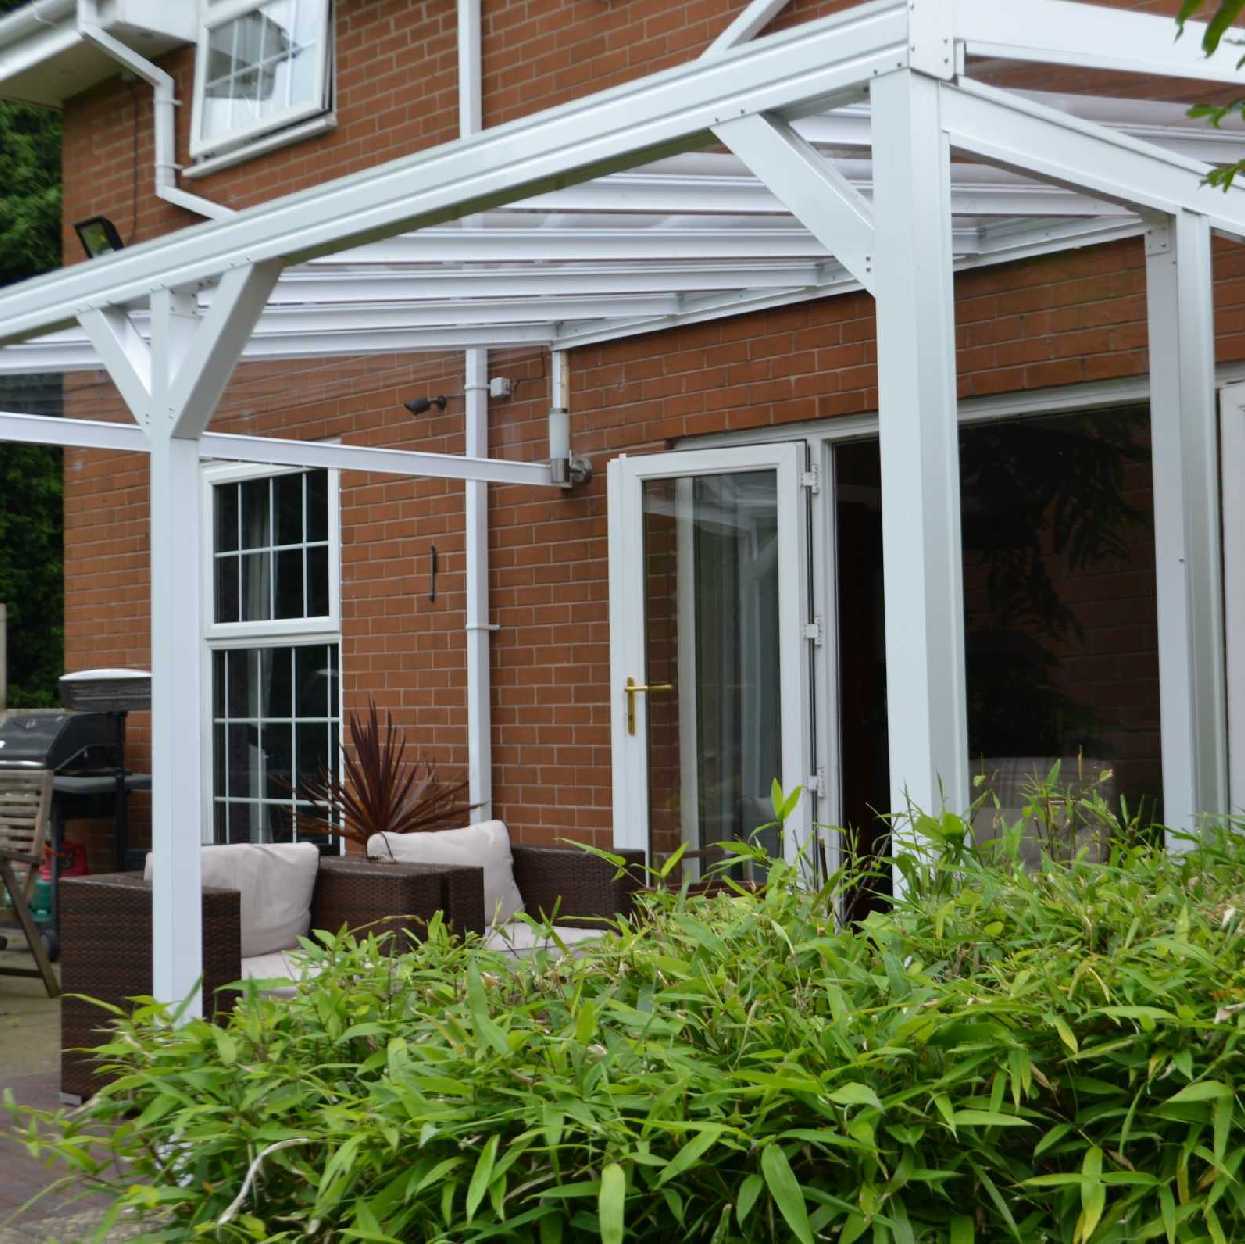 Omega Smart White Lean-To Canopy UNGLAZED for 6mm Glazing - 10.5m (W) x 2.5m (P), (5) Supporting Posts from Omega Build